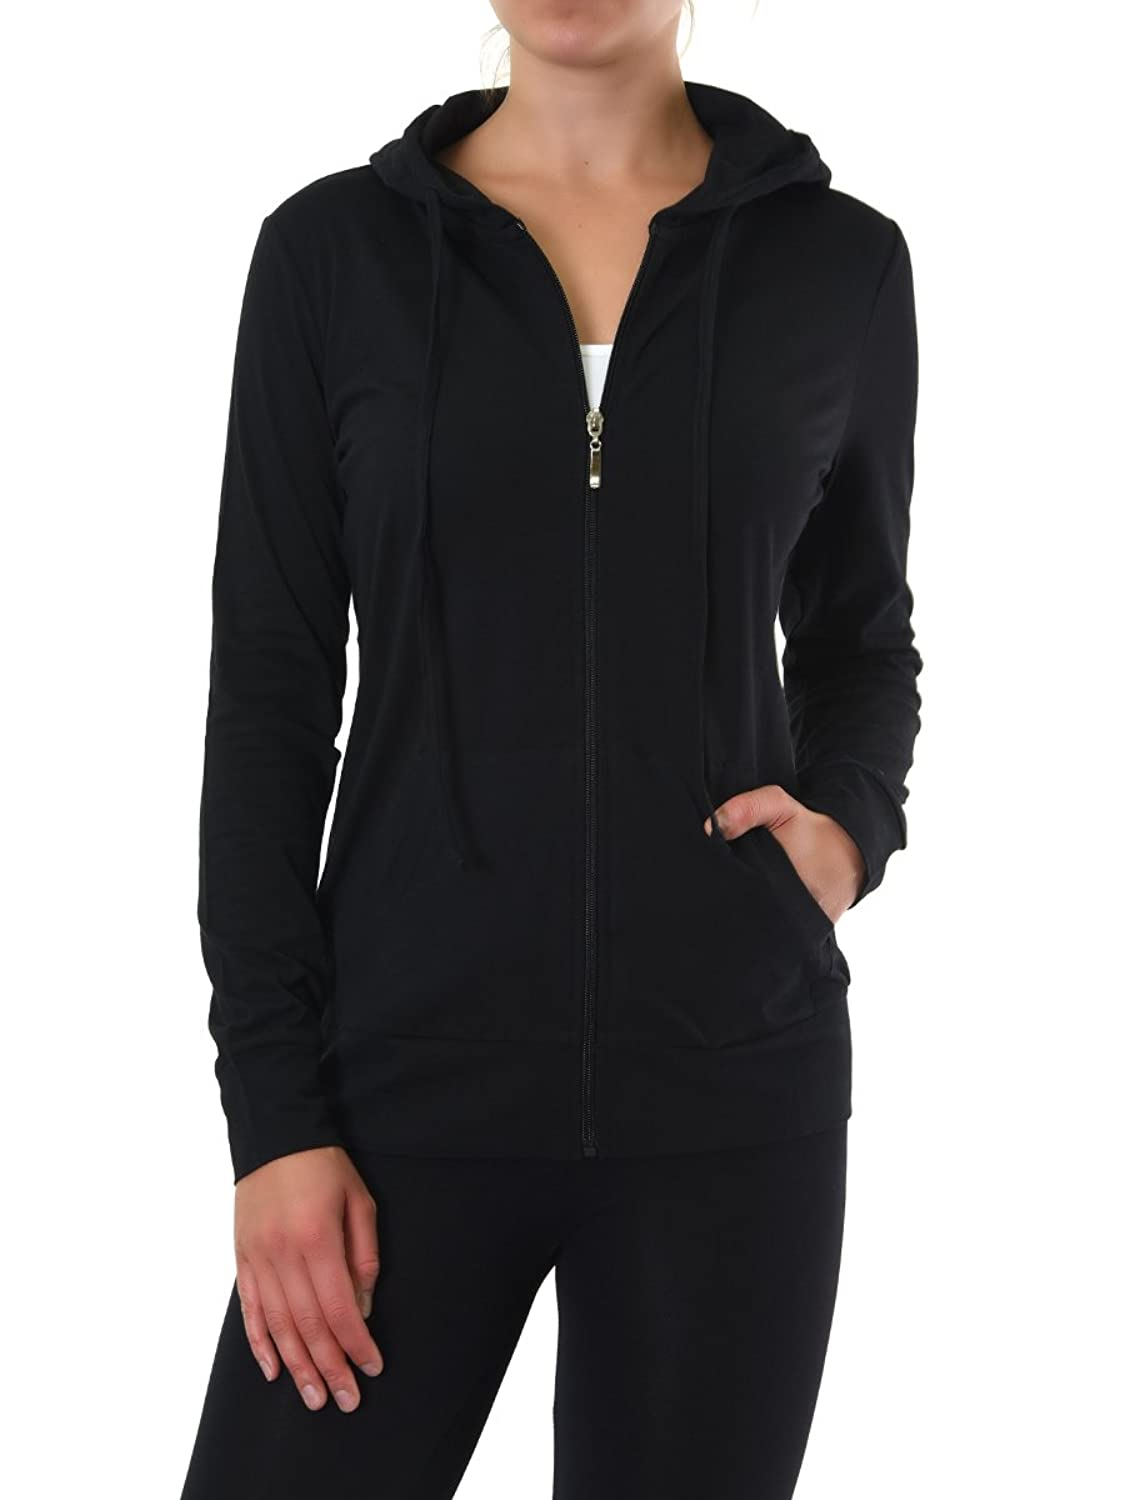 Teejoy Womens Cotton Hoodie Jacket Image 1